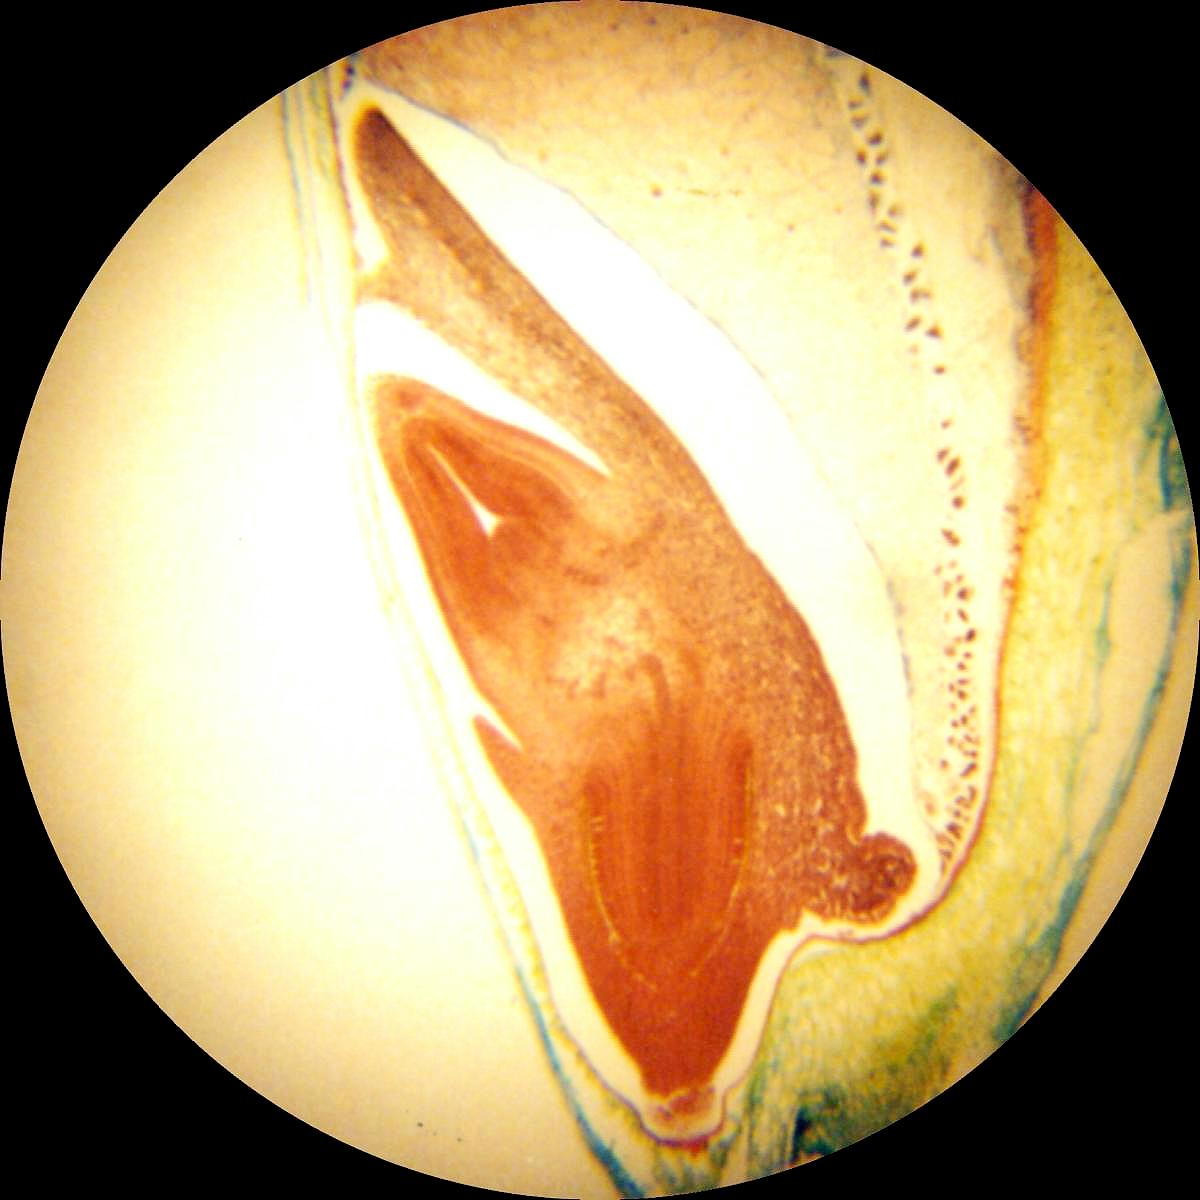 Wheat kernel 4x objective